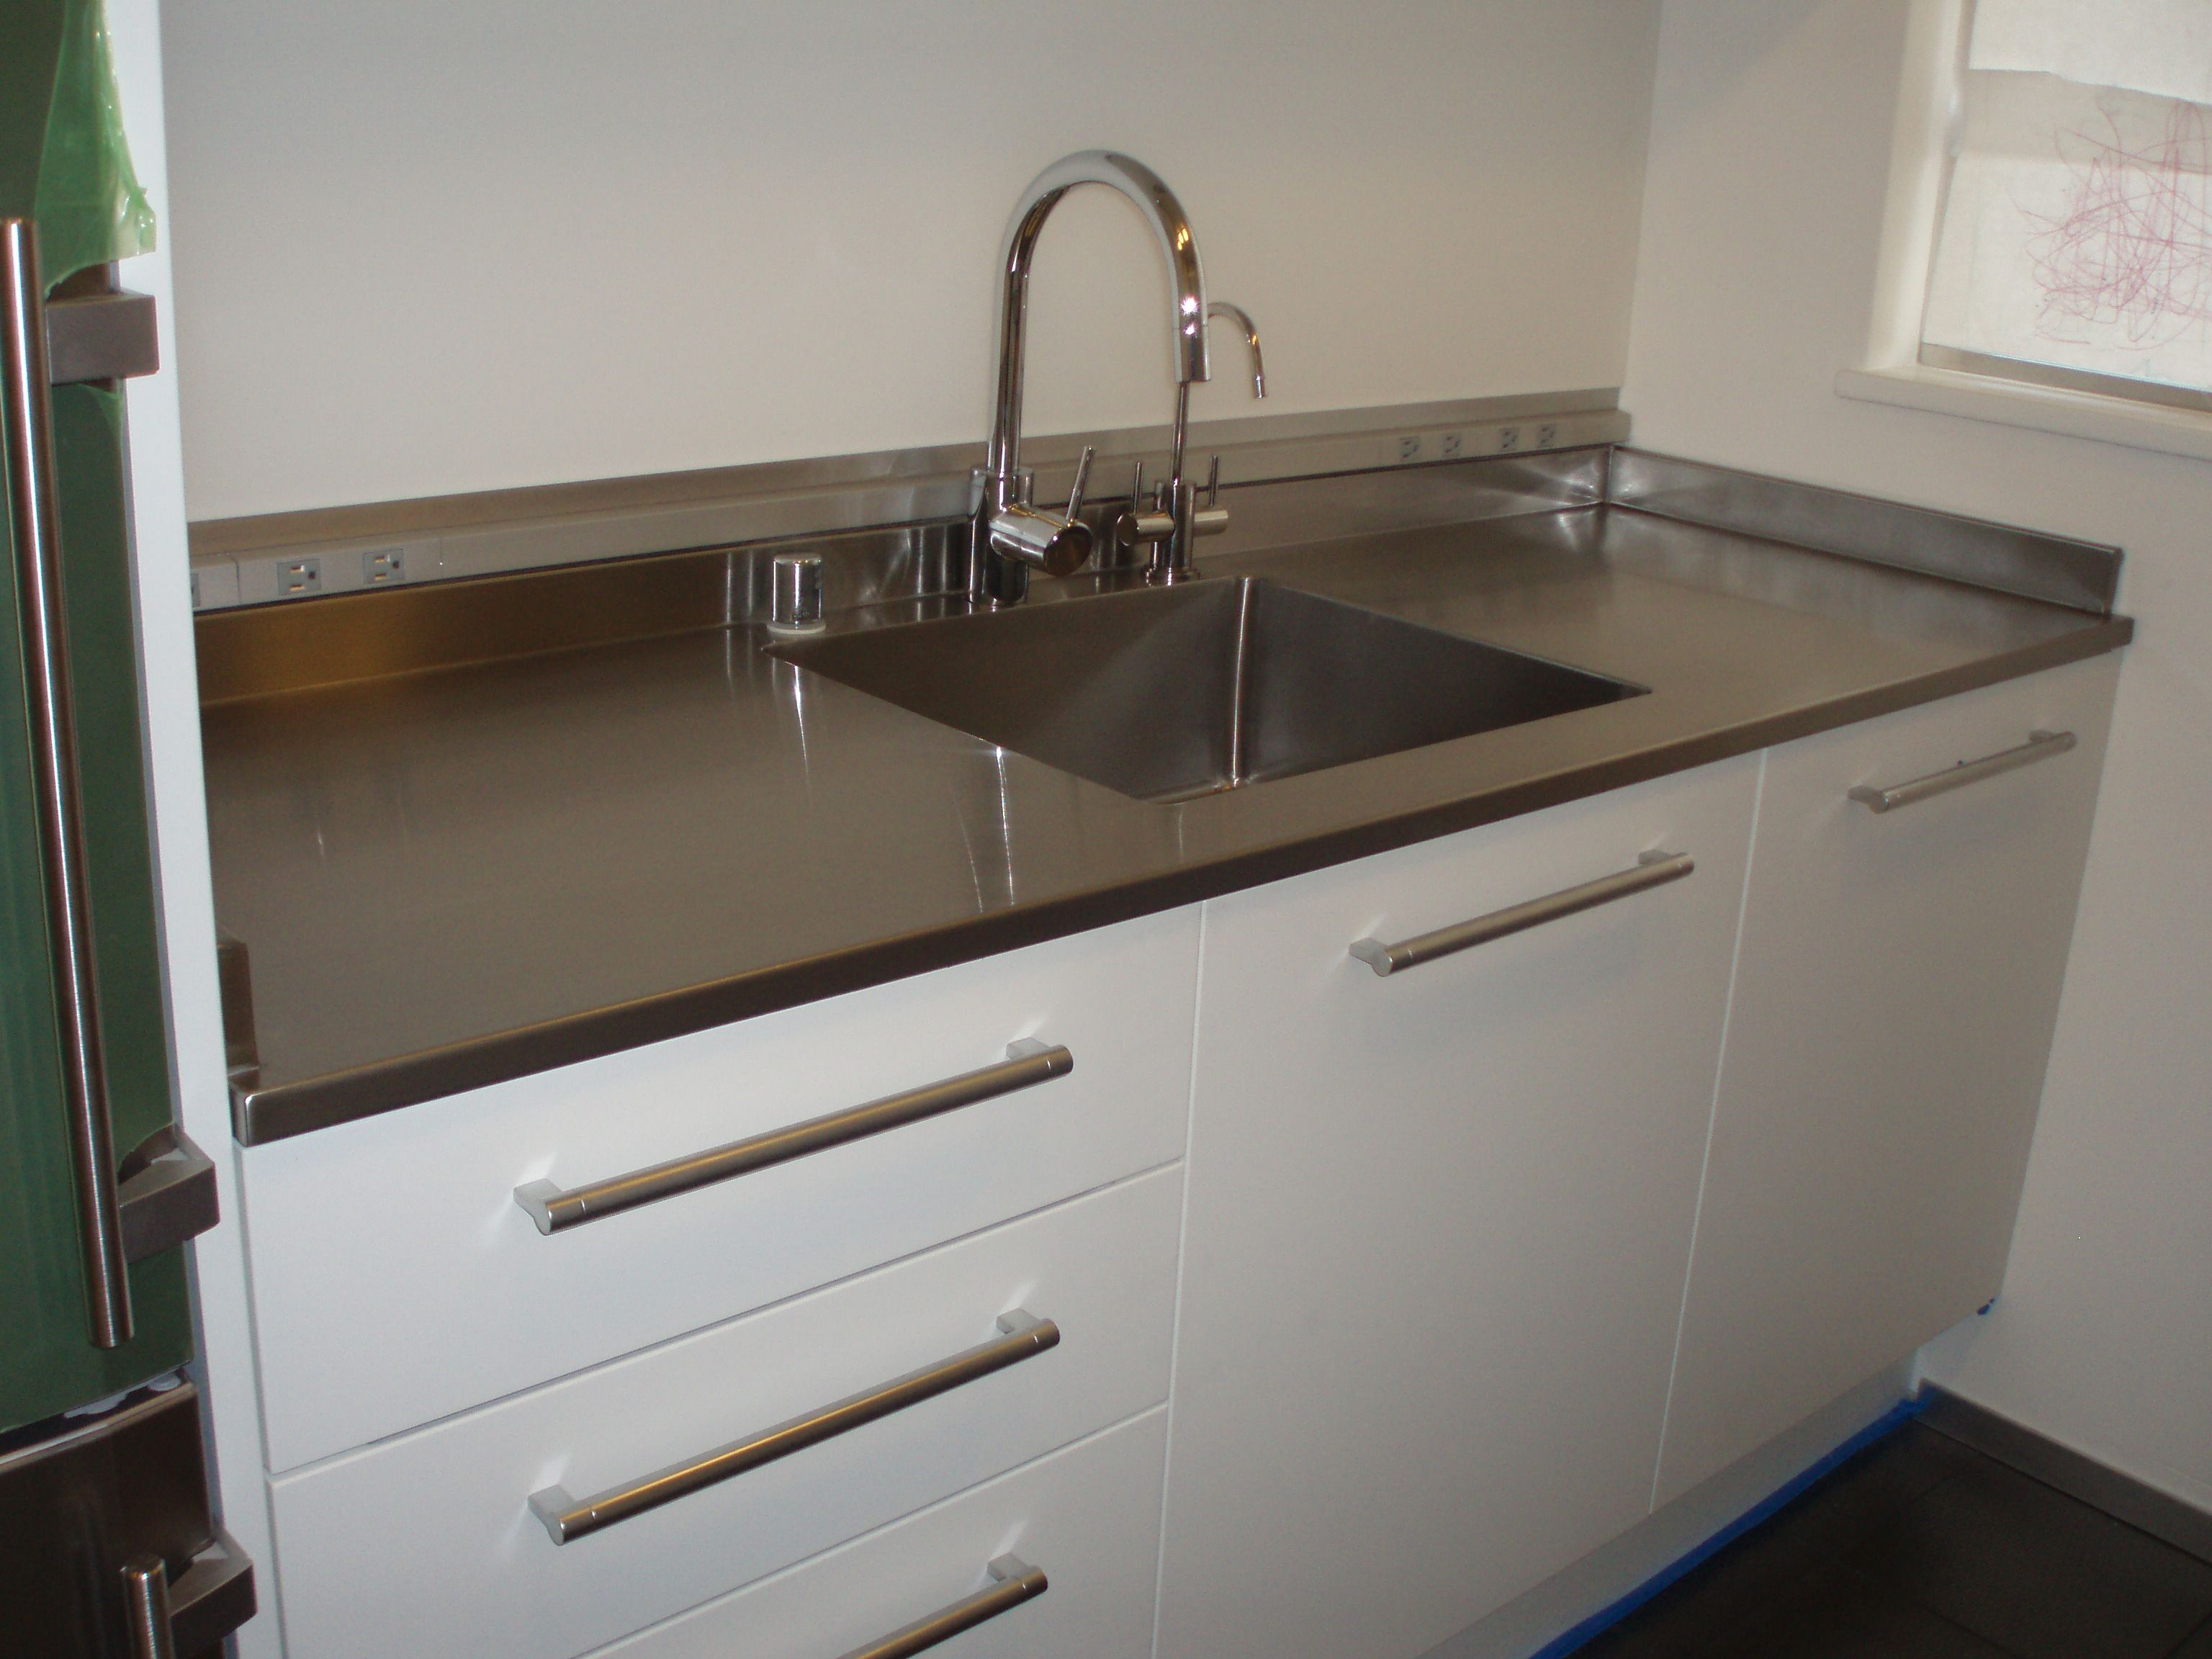 Kitchen Sink Specifications Seamless counter with seamless sink incorporated 1 lip drop back seamless counter with seamless sink incorporated 1 lip drop back side splash to specifications drawings workwithnaturefo